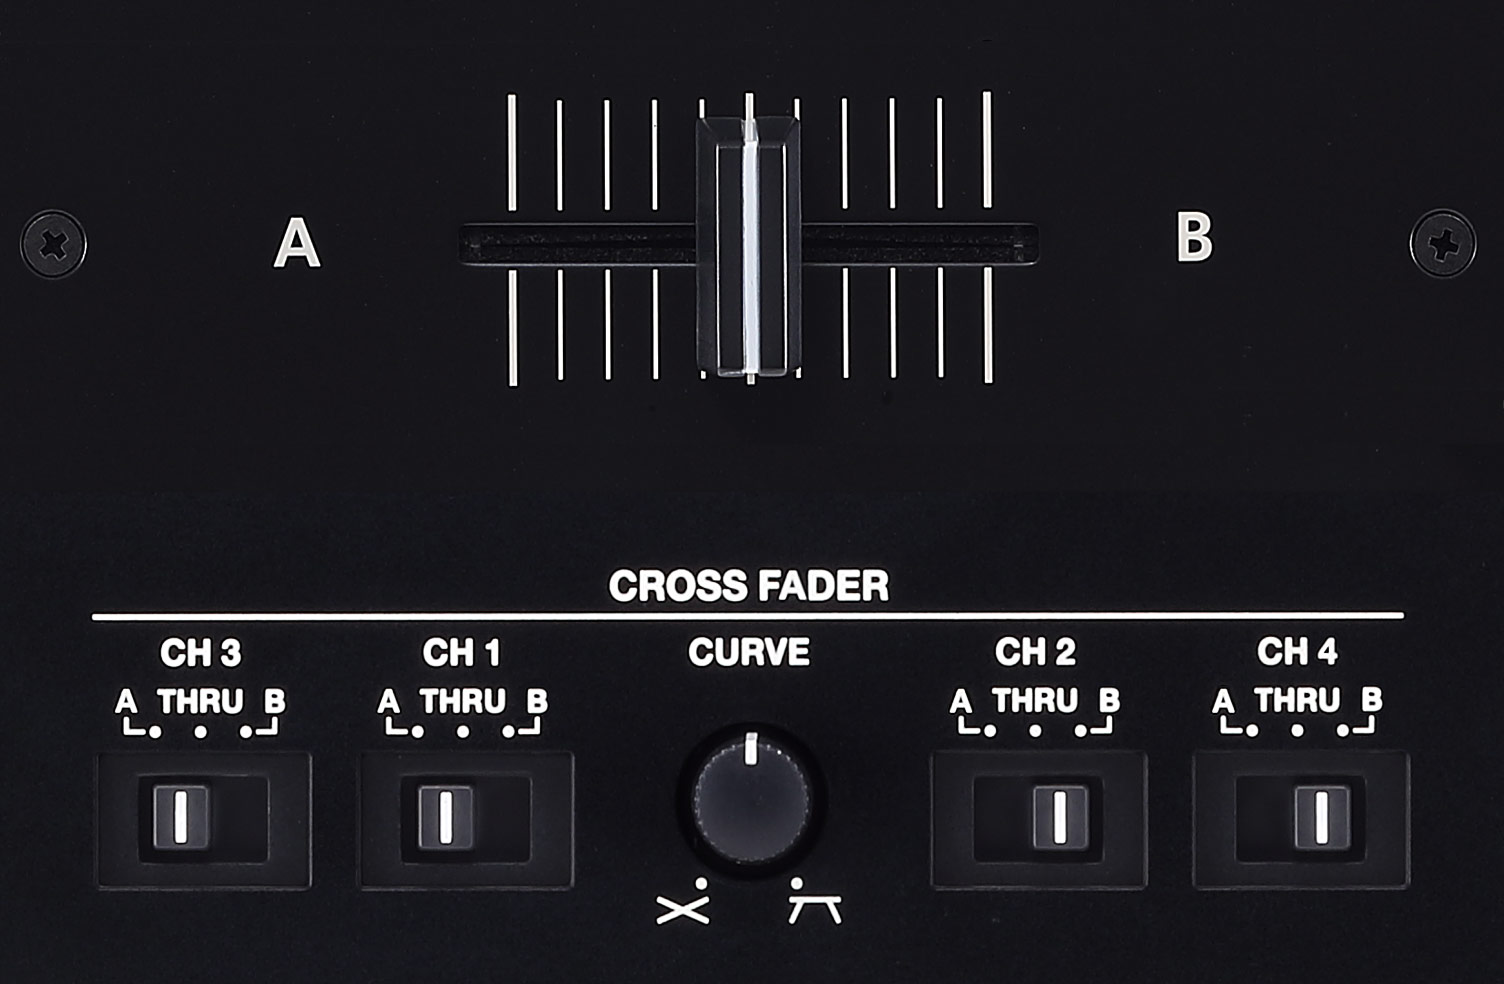 Fully Adjustable Crossfader